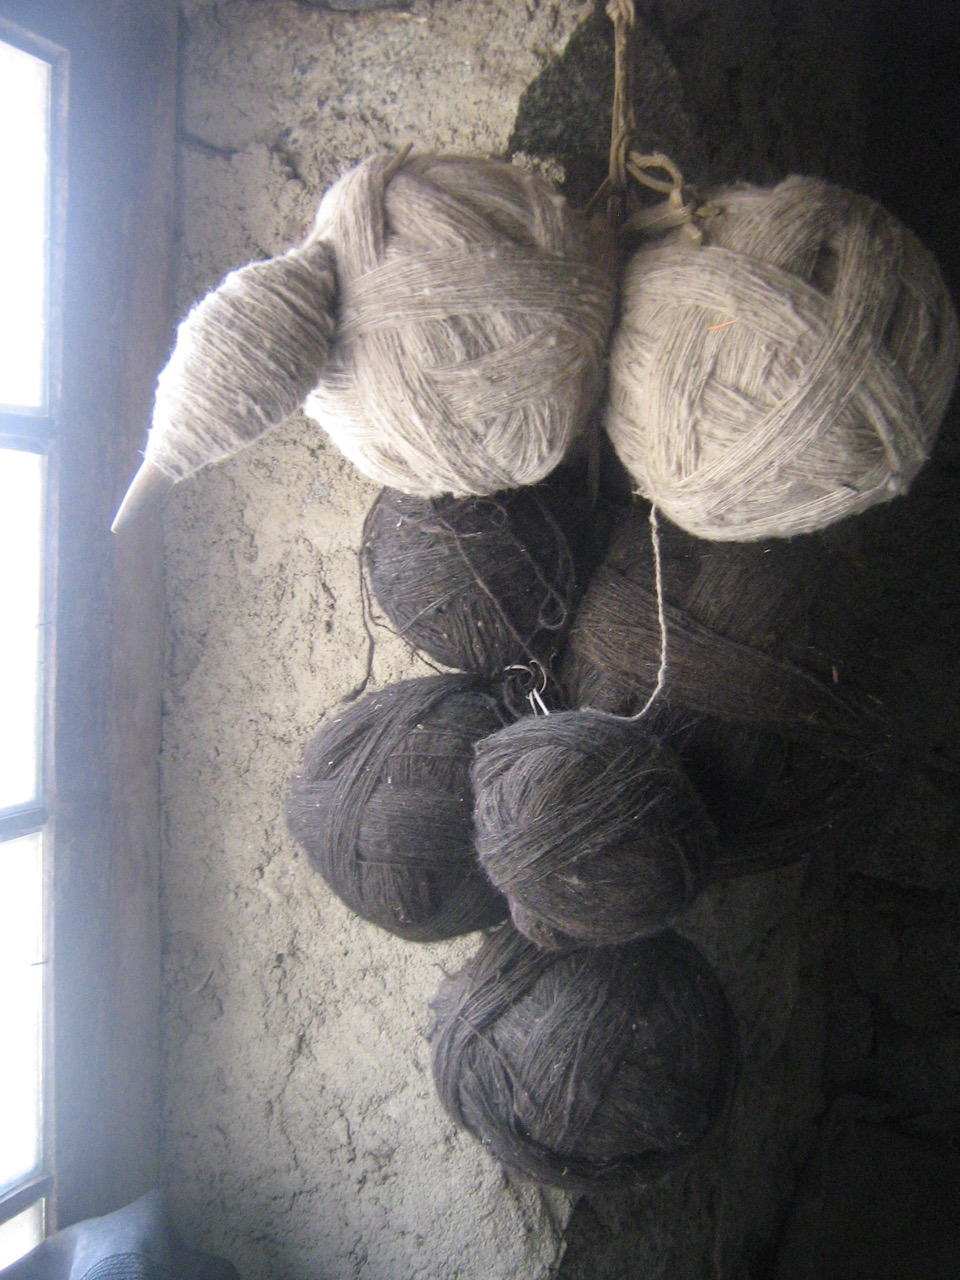 Two-stranded plying balls of spindle-spun yarn and a phang-in-progress, hanging in a Ladakhi home in 2007.